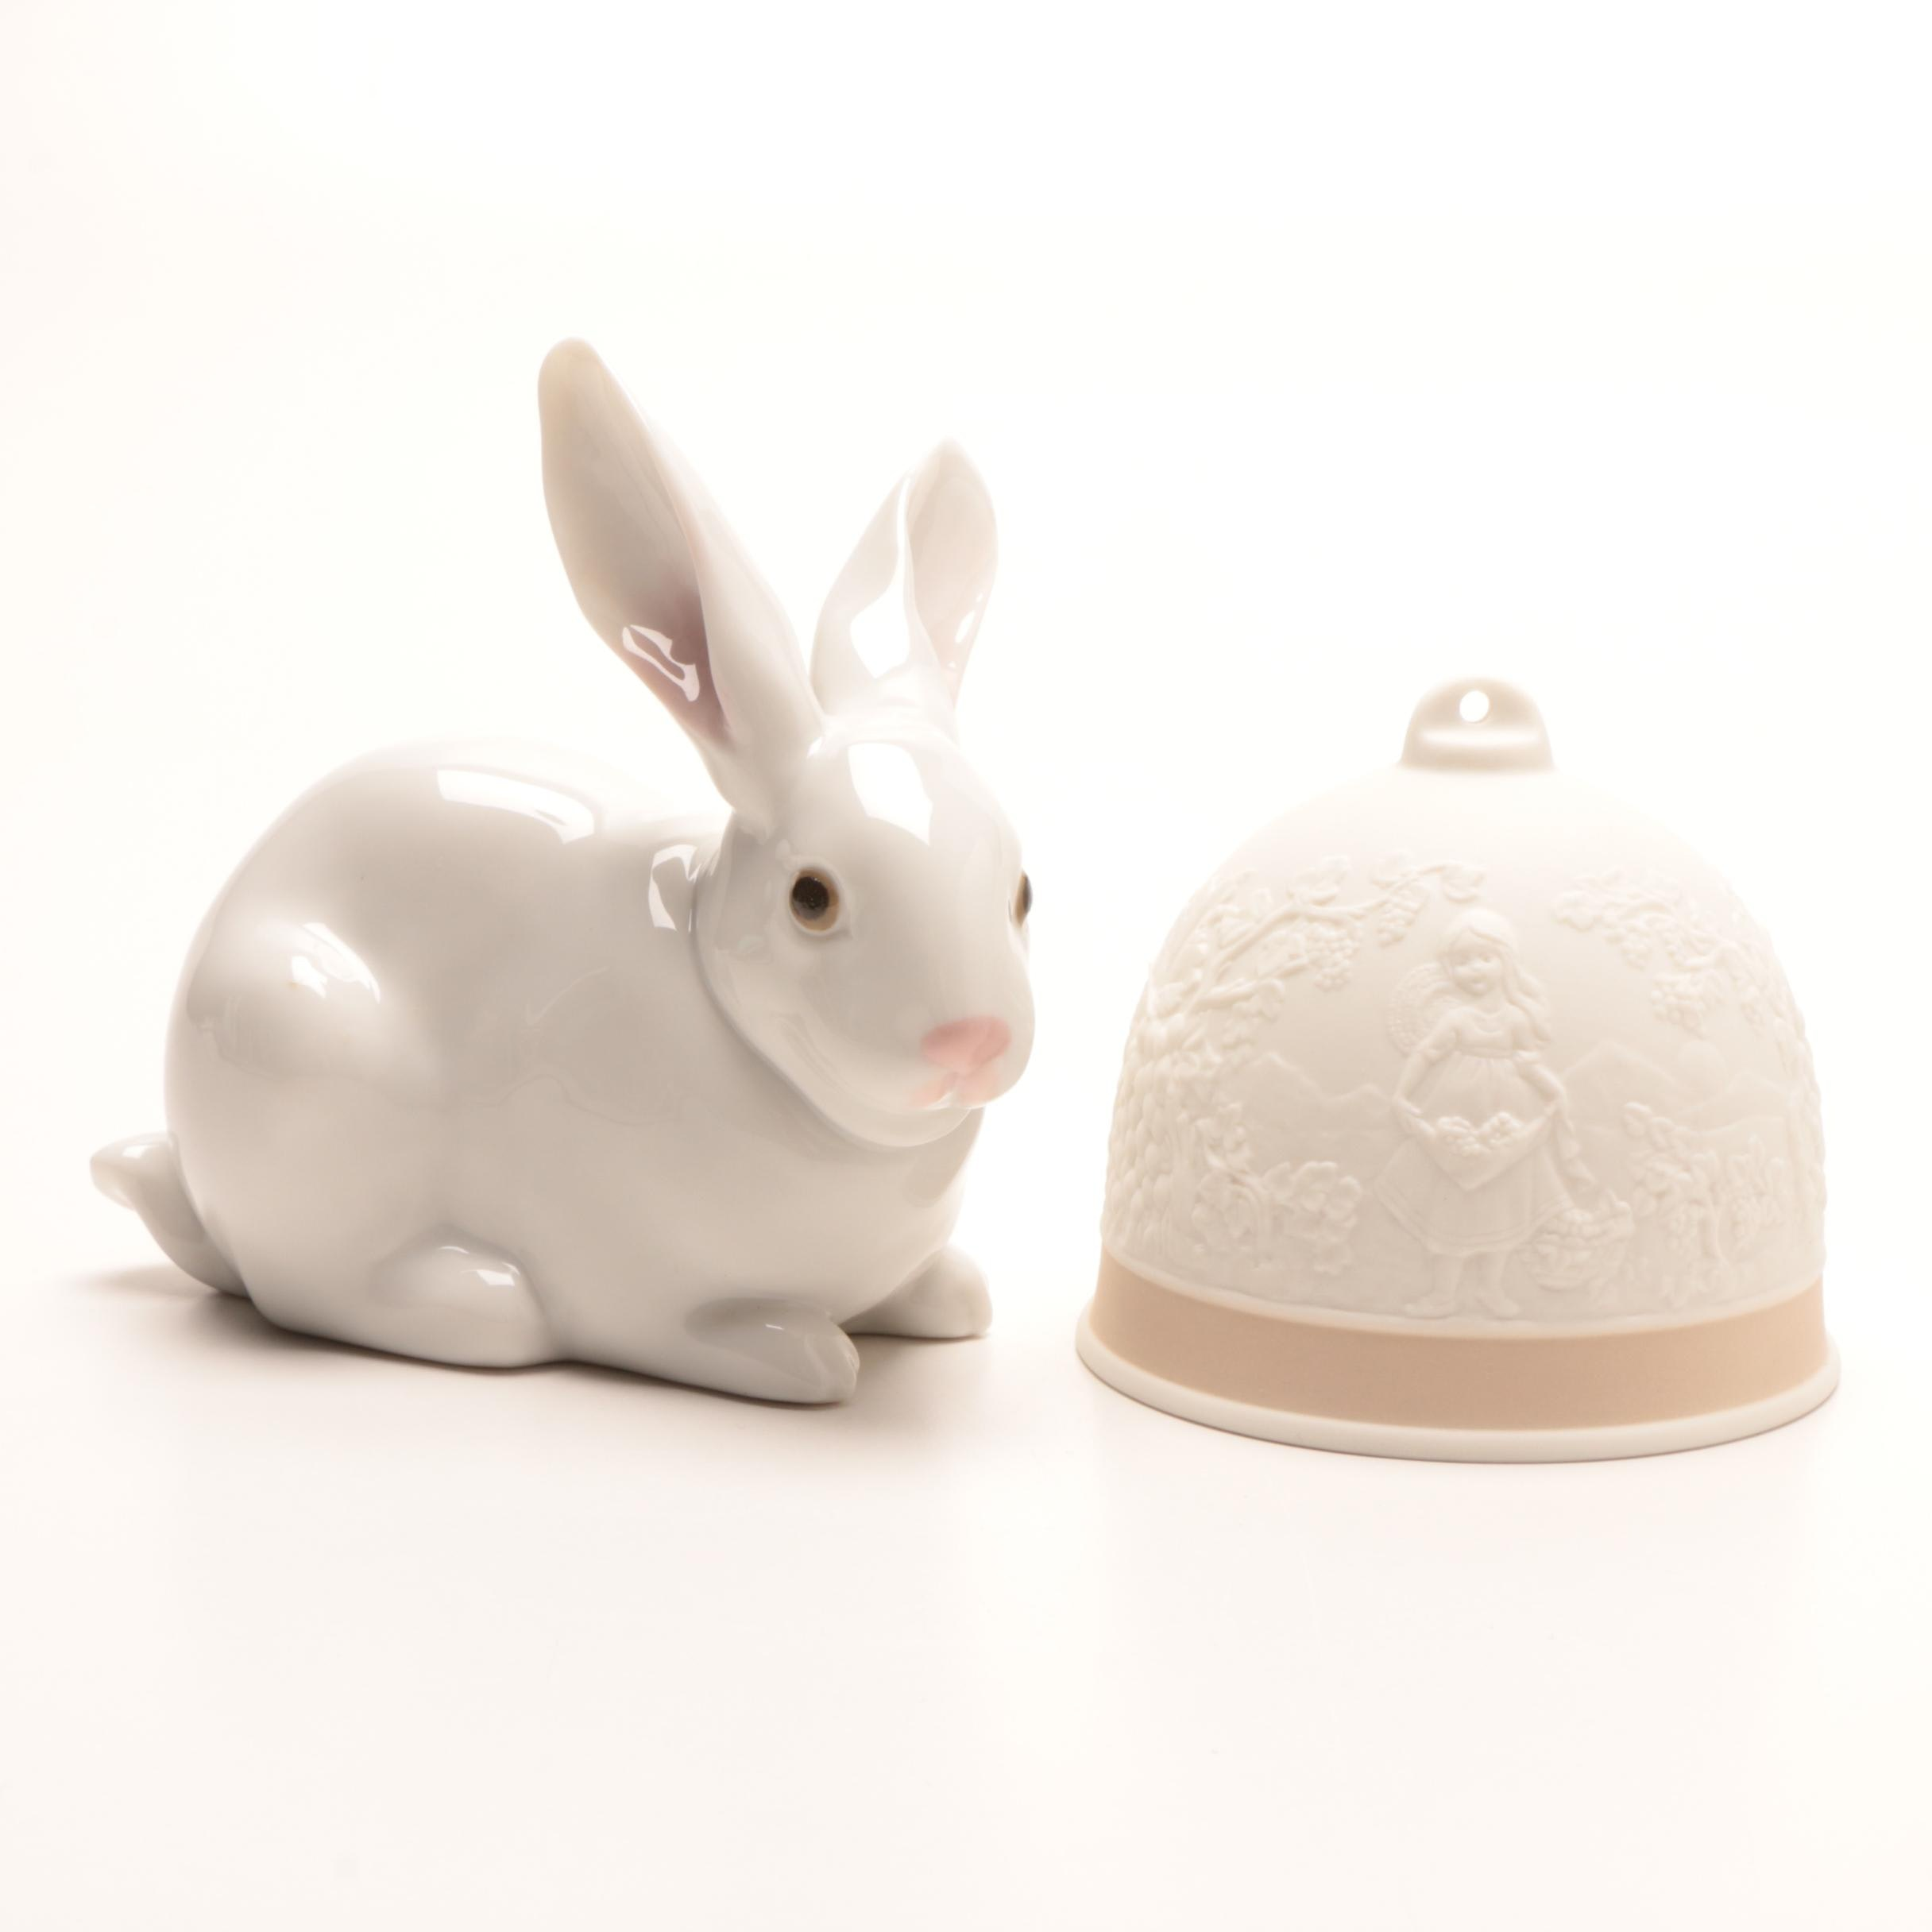 """Lladró """"Attentive Bunny"""" Porcelain Figurine and """"Fall"""" Bell"""